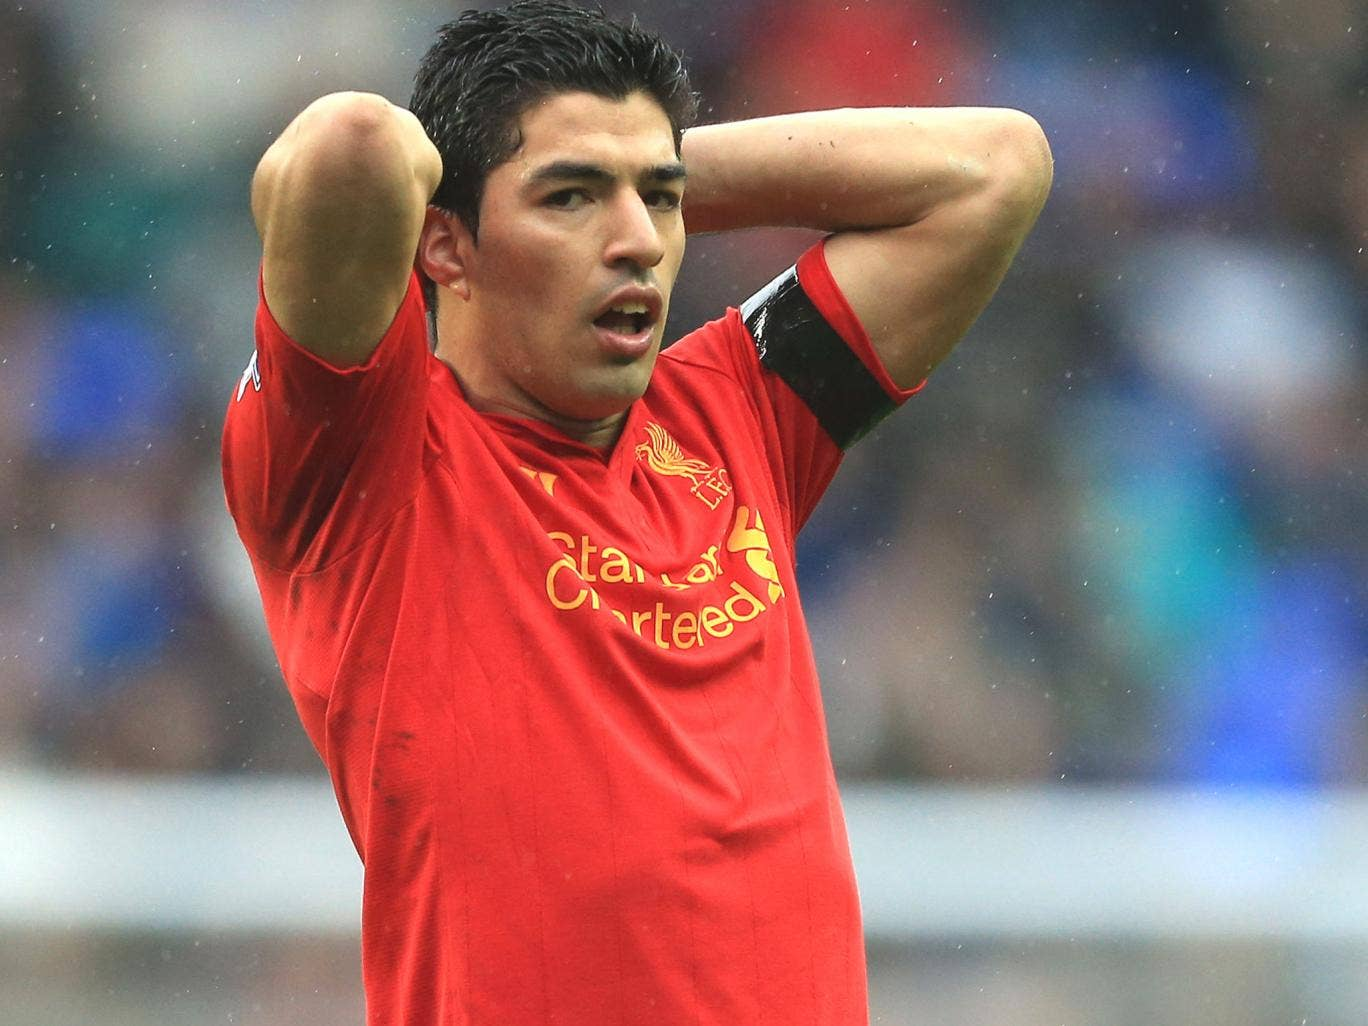 Luis Suarez has already been judged before any hearing